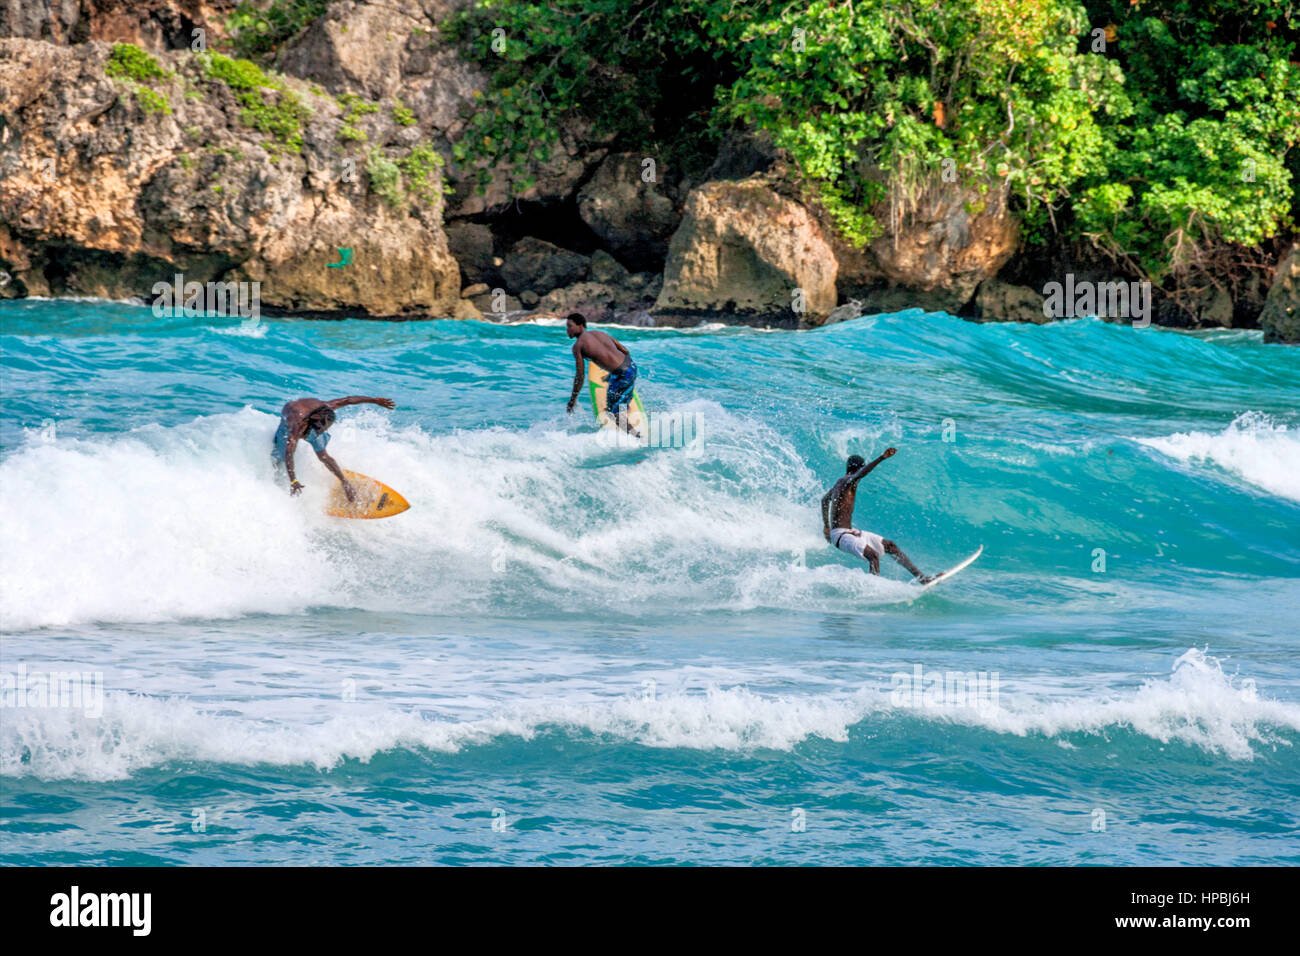 Surfer, Boston bay, watersports, waves, surfing, Jamaica, Jamaika - Stock Image